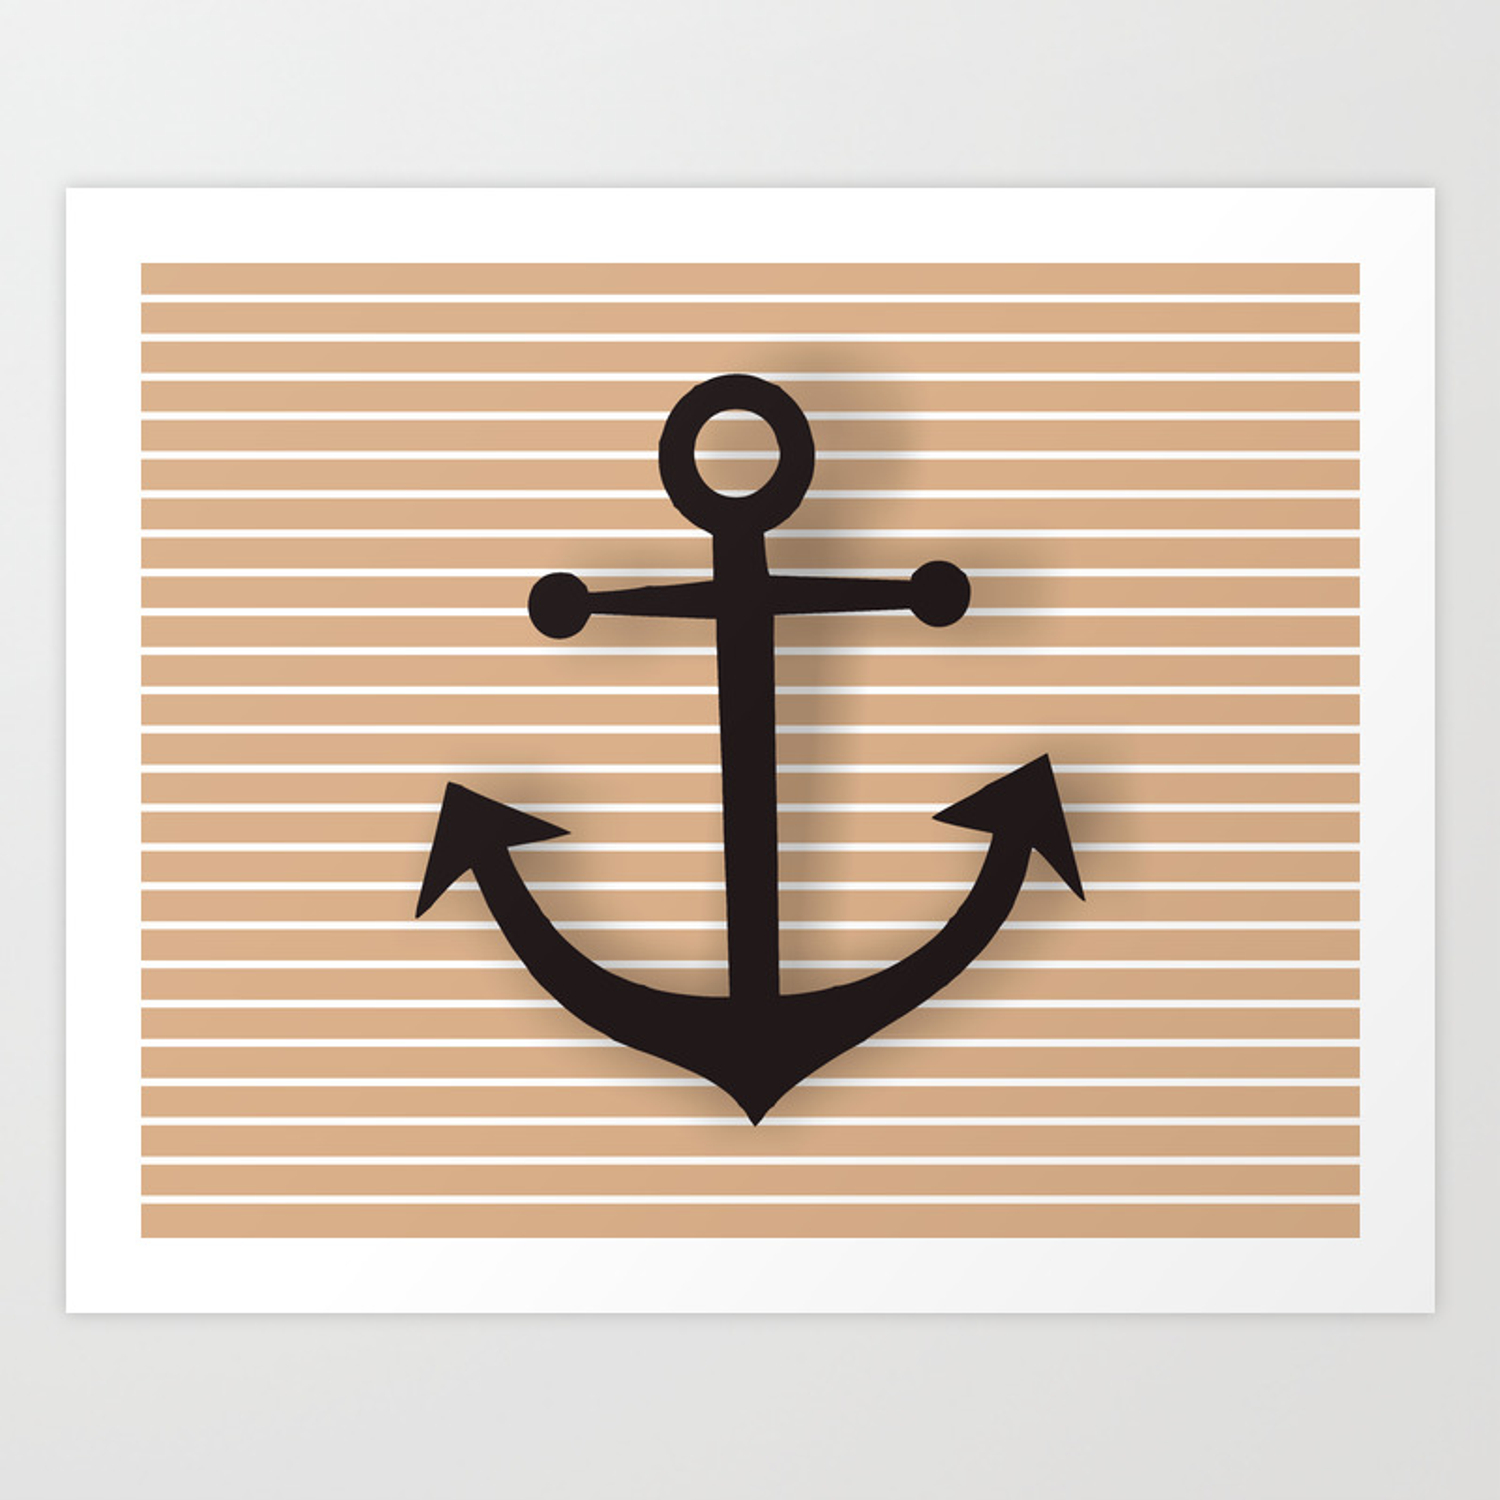 Wall Decor Bathroom Decoration Anchor Poster Brown And Black Sea Theme Ocean Boat Home Decor Art Print By Lubo Society6